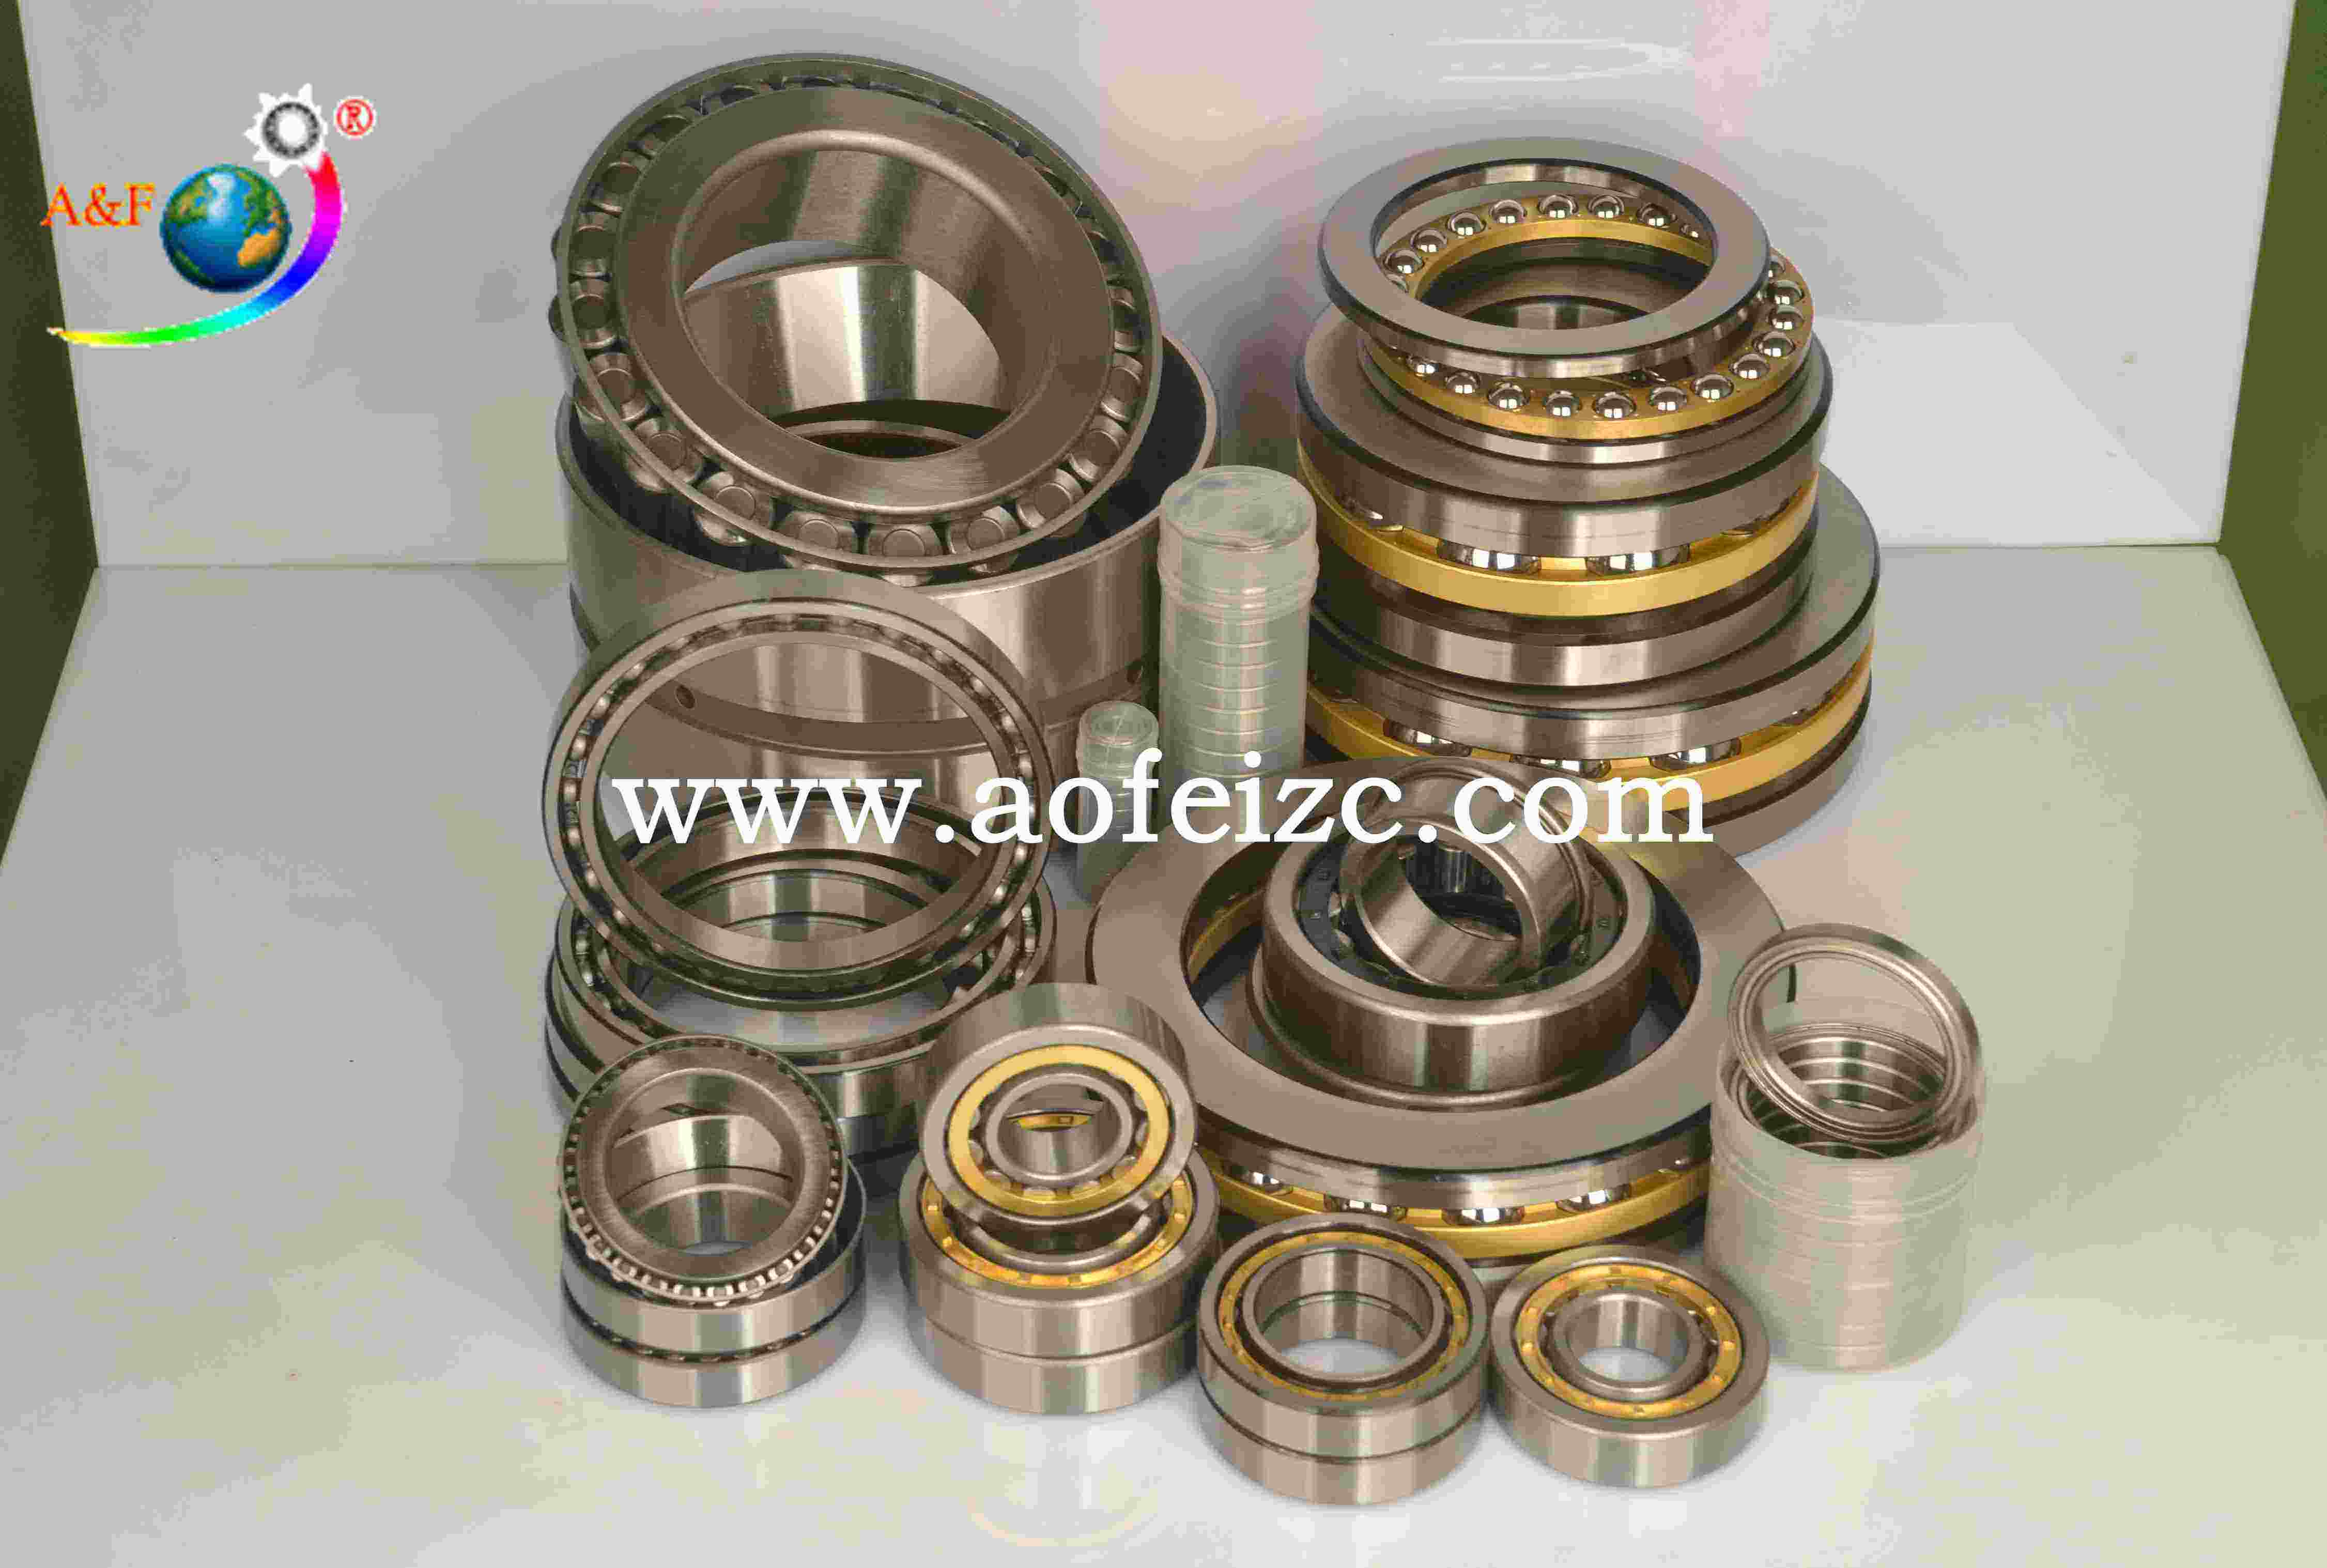 A&F Bearing/Deep groove ball bearing/Tapered roller bearing/Spherical bearing/Roller bearing/Ball bearing 6204 to 6240